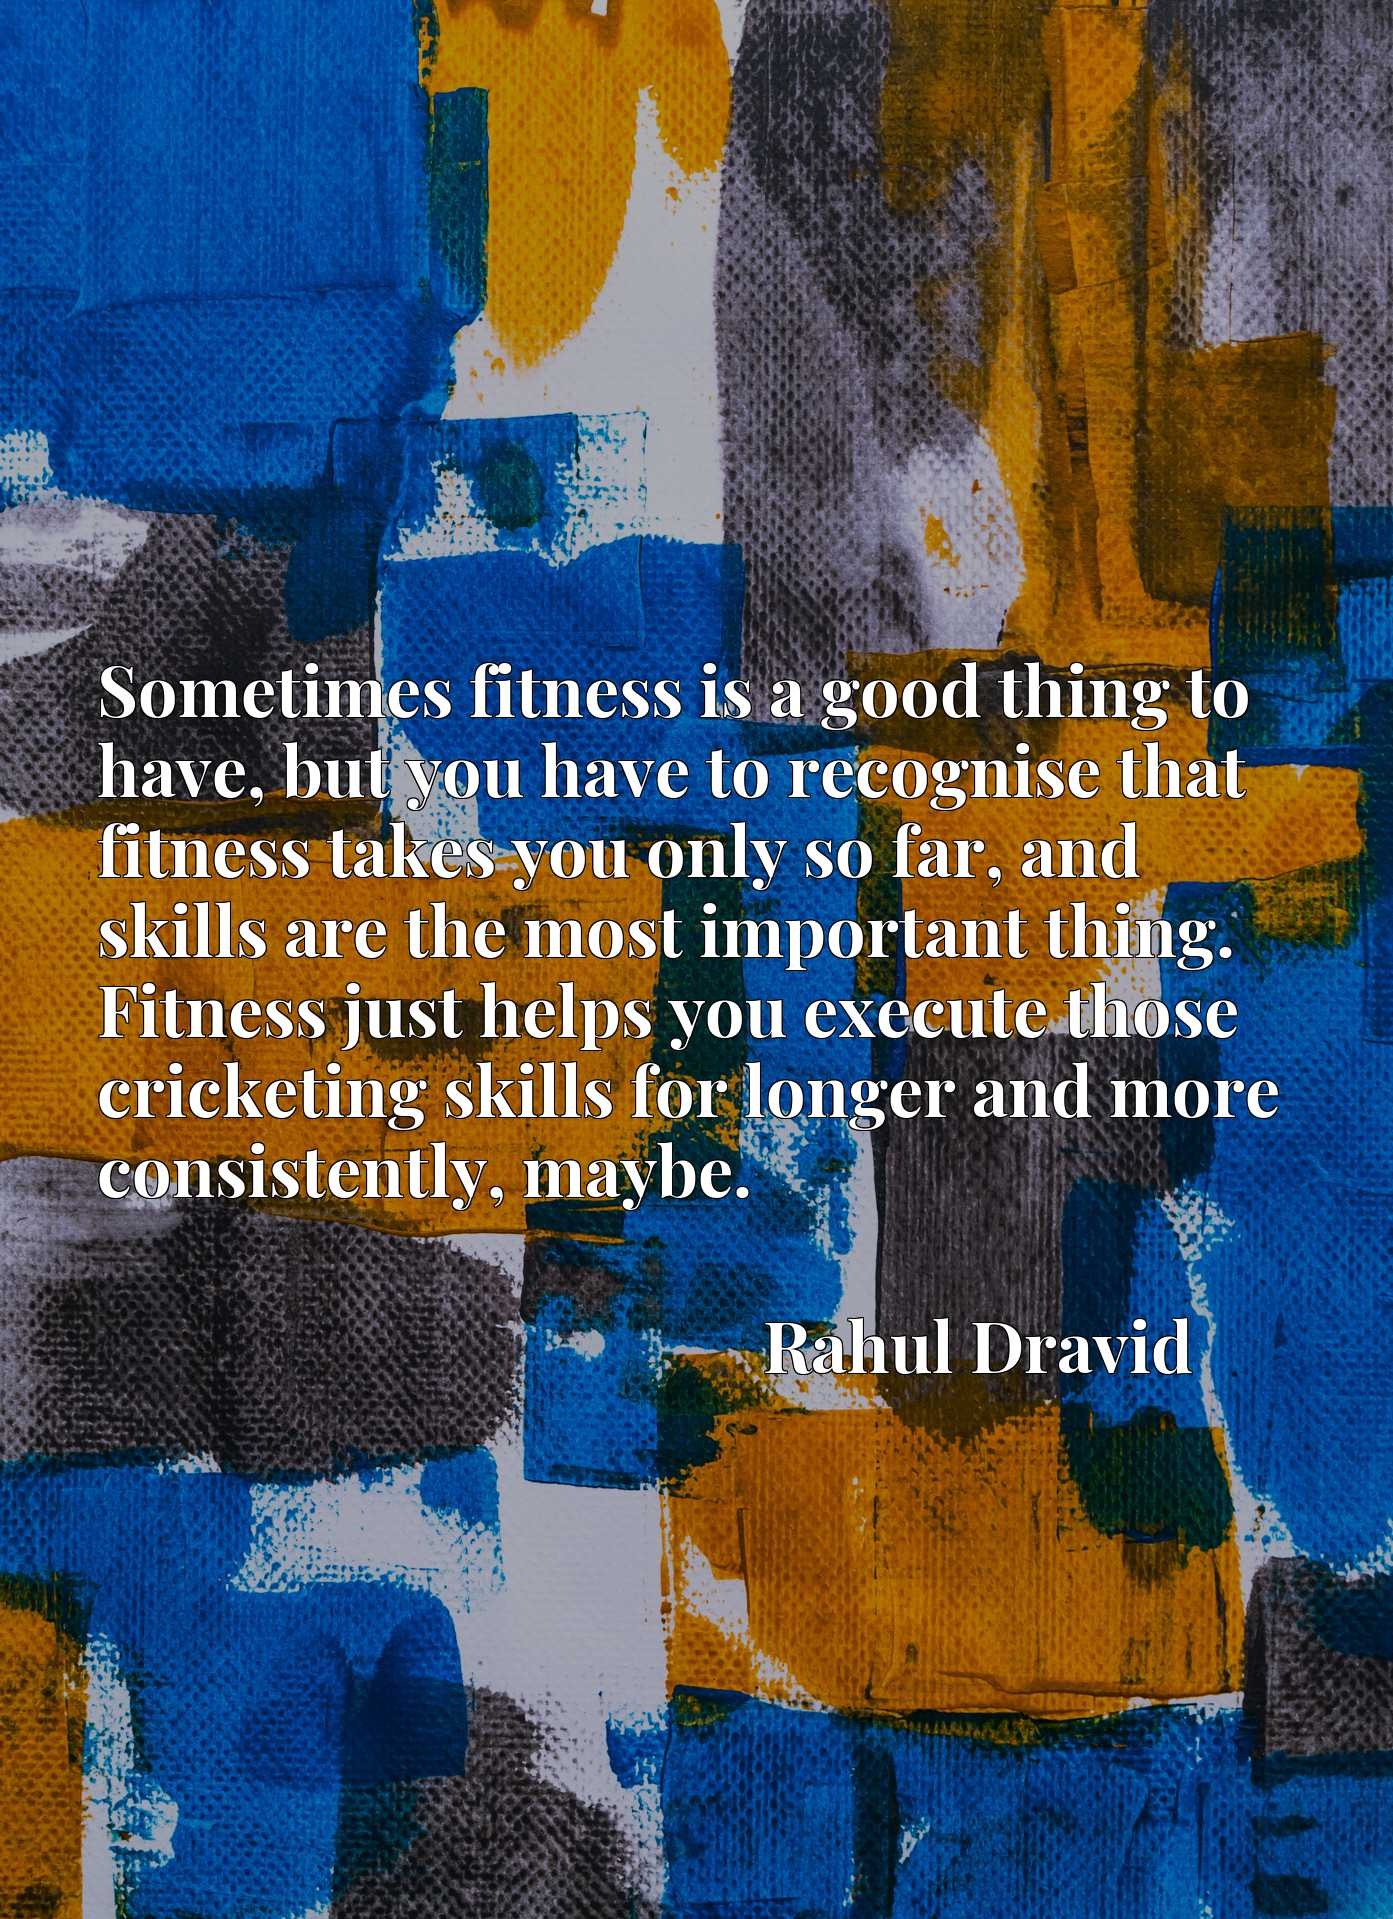 Sometimes fitness is a good thing to have, but you have to recognise that fitness takes you only so far, and skills are the most important thing. Fitness just helps you execute those cricketing skills for longer and more consistently, maybe.